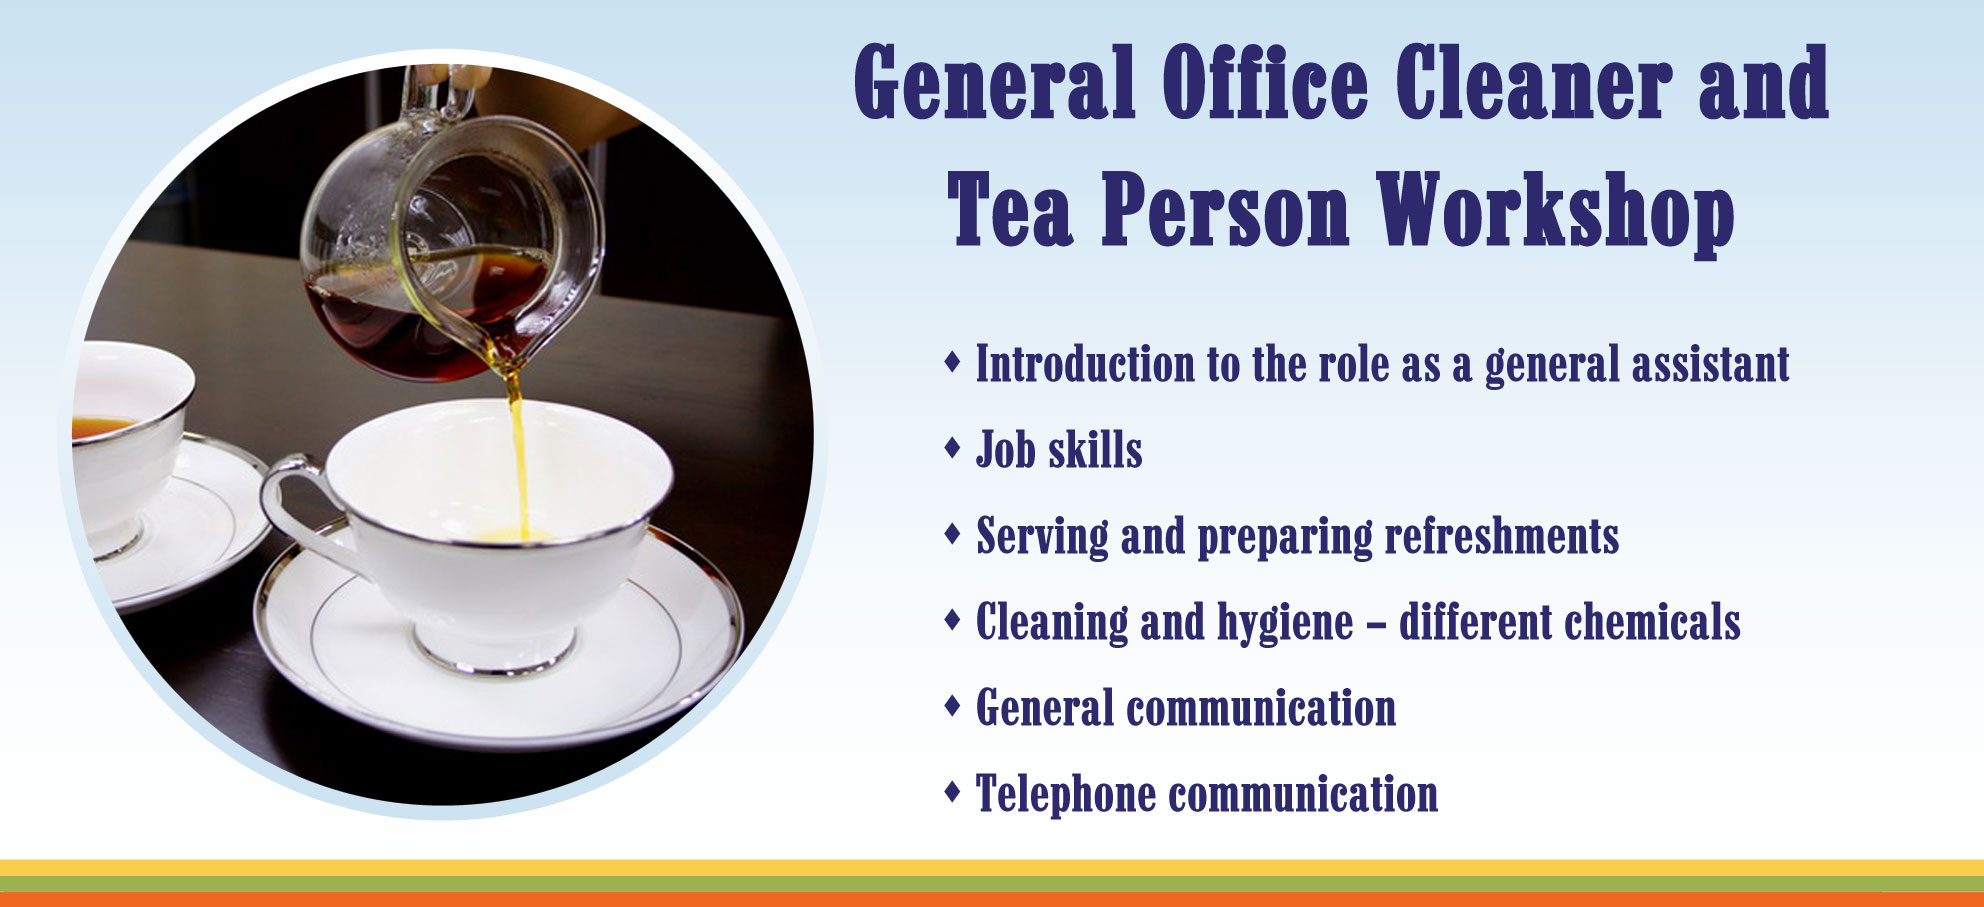 General Office Cleaner & Tea Person